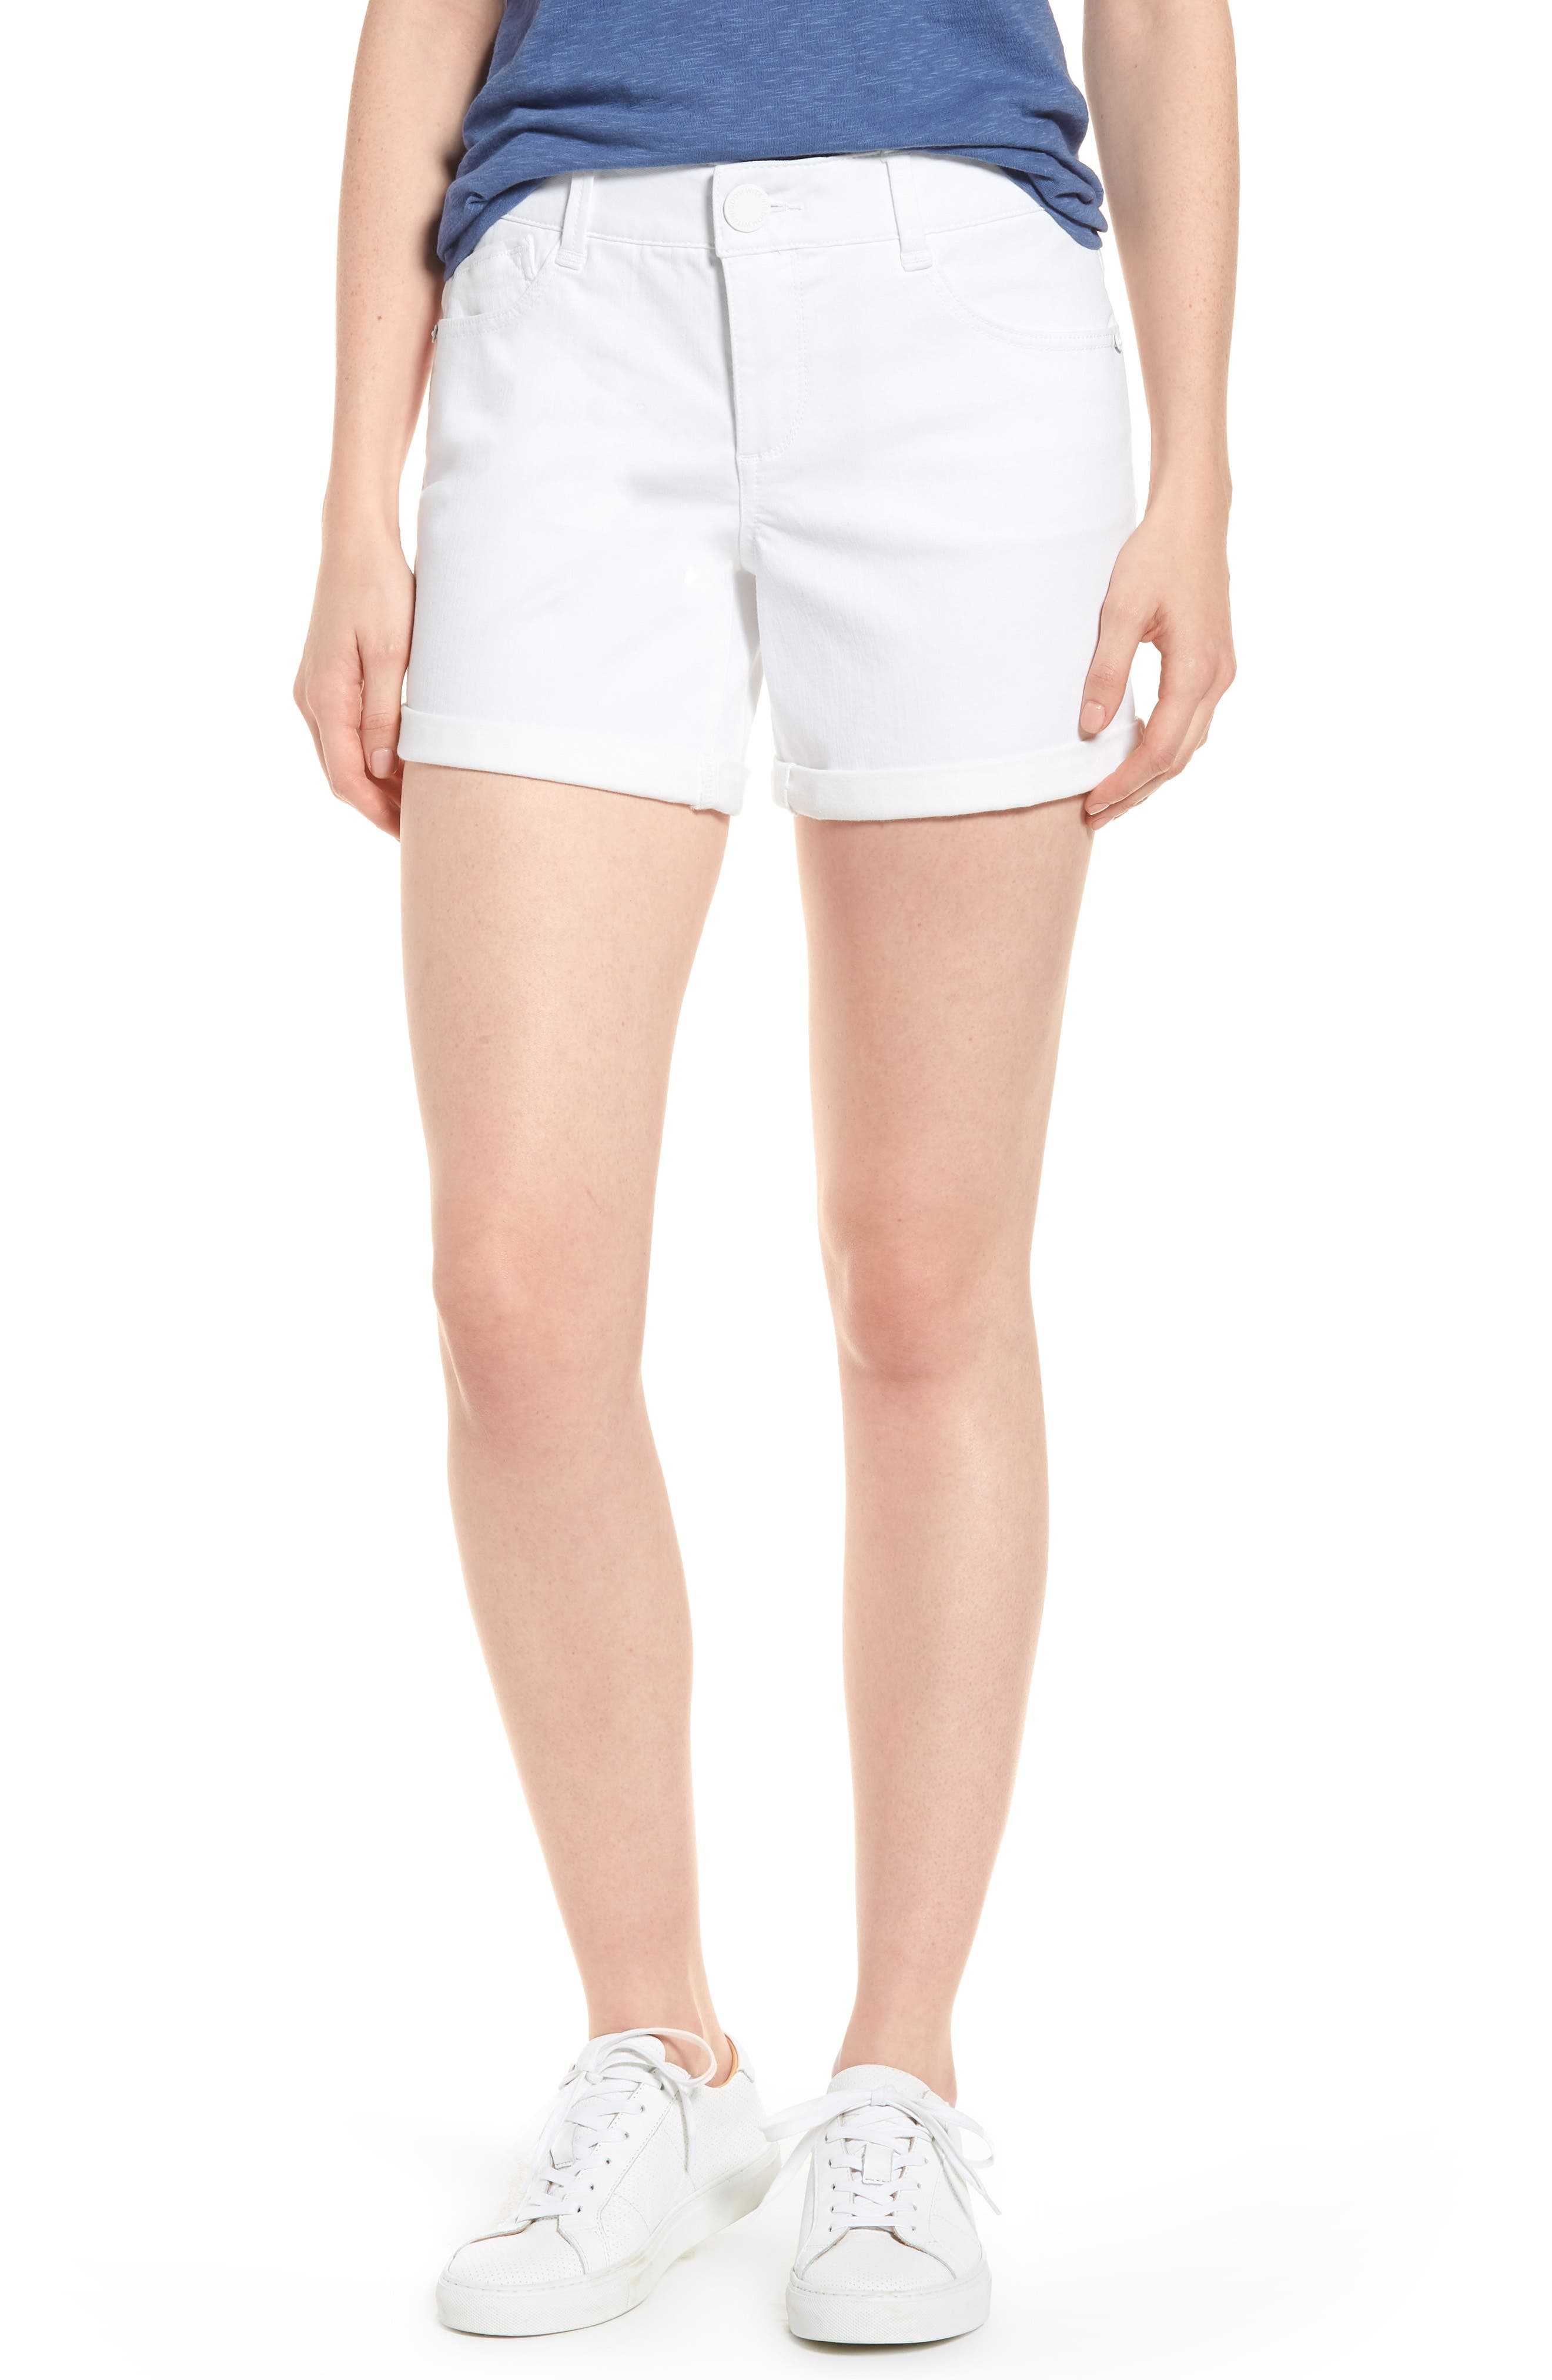 Wit & Wisdom Ab-solution Cuffed White Shorts (Nordstrom Exclusive)